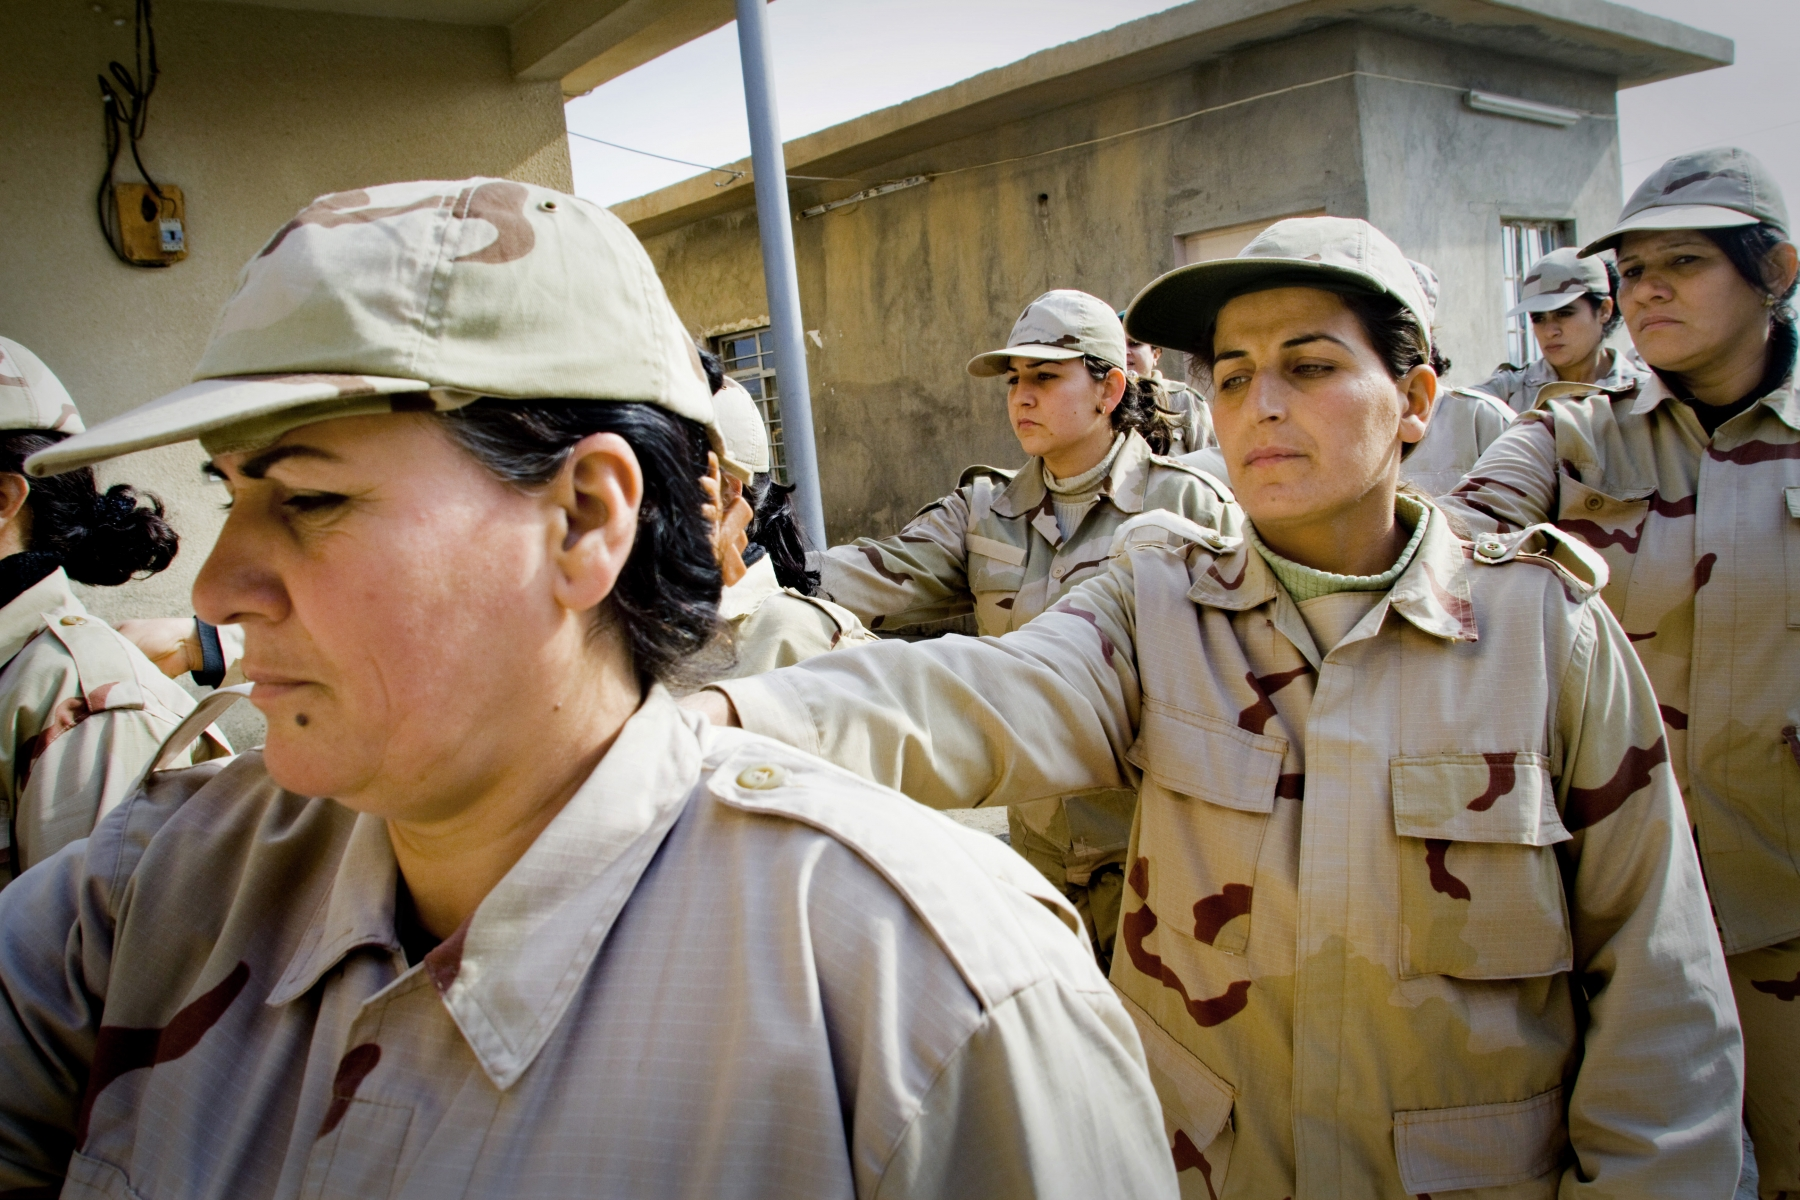 Kurdish soldiers in Iraq 2009